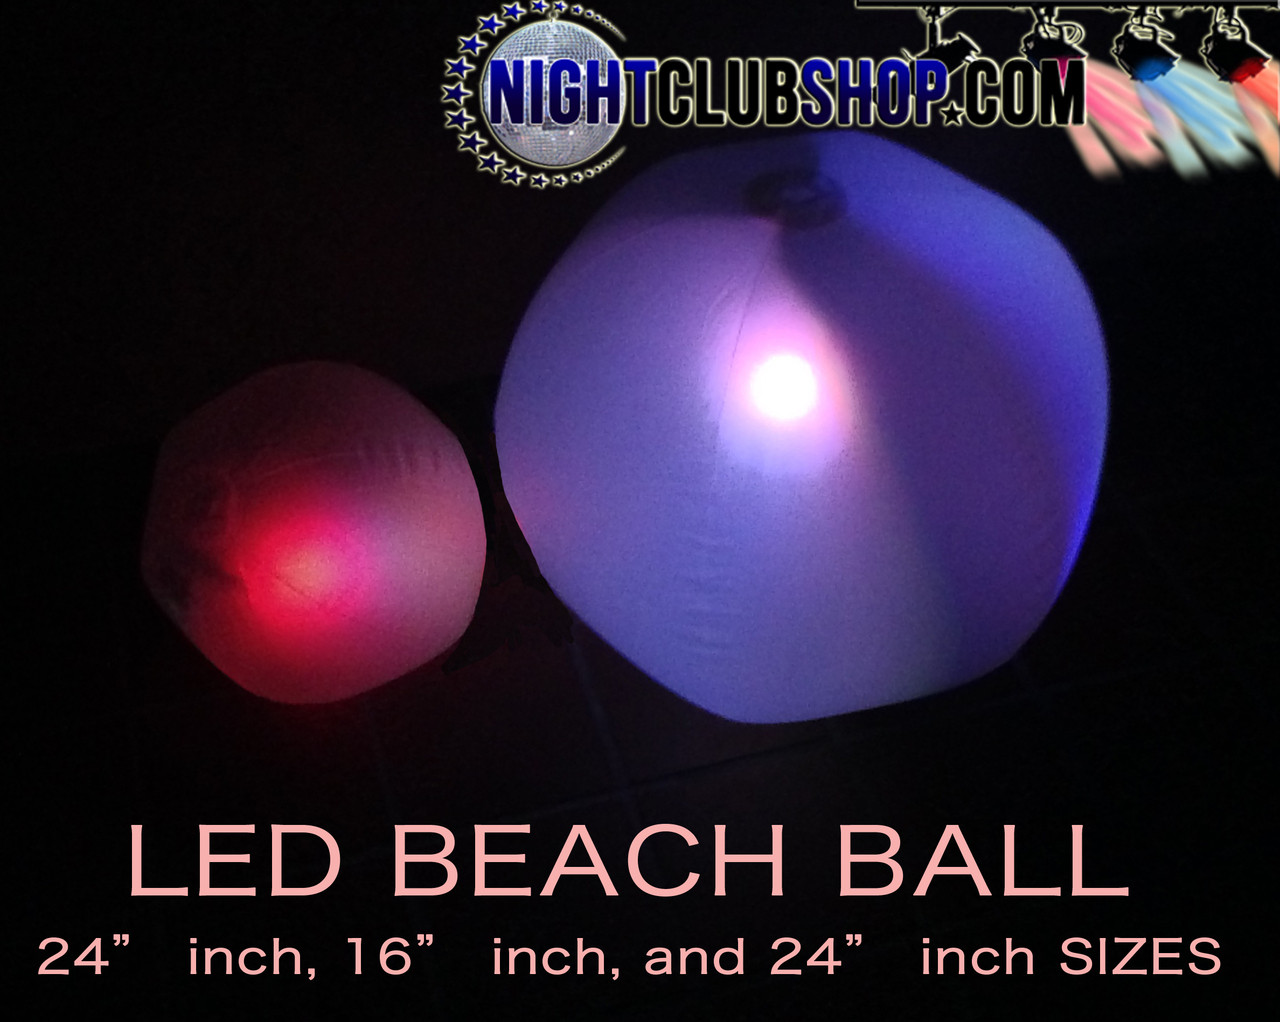 LED BEACH BALL 36 INCH CADILLAC VERSION (LED BEACHBALL)